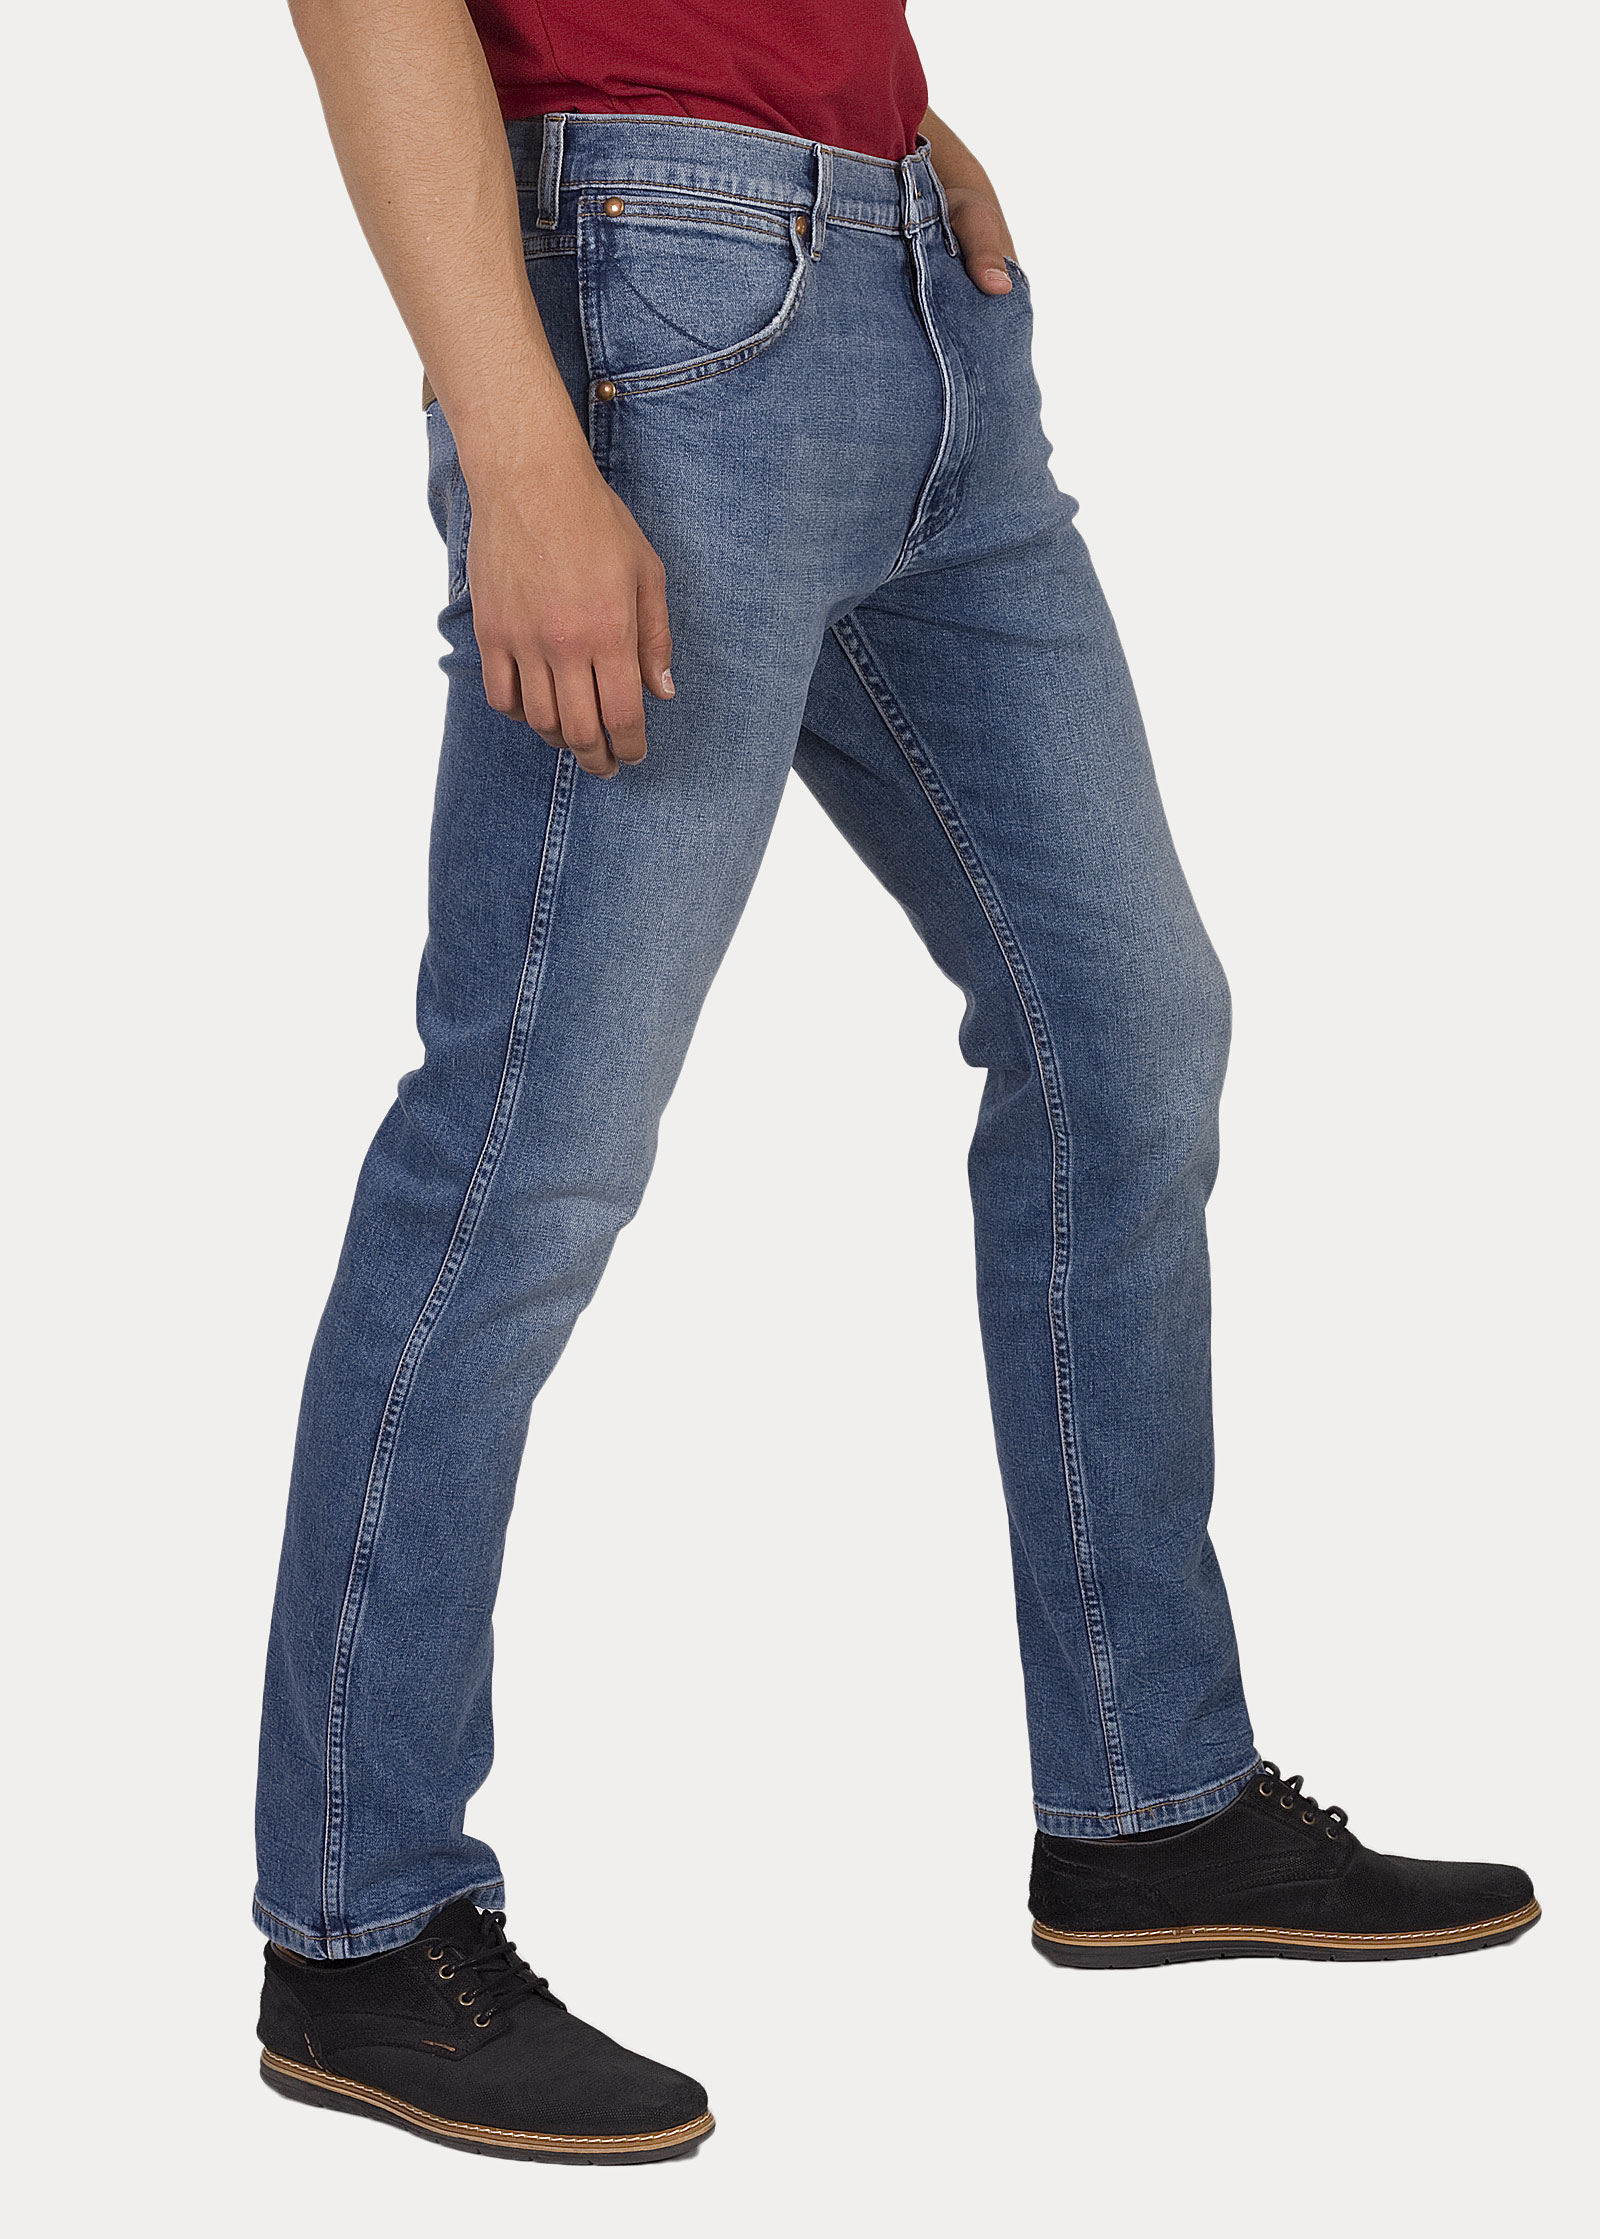 Wrangler® Icons 11MWZ Western Slim Jeans - 3 Years - elements